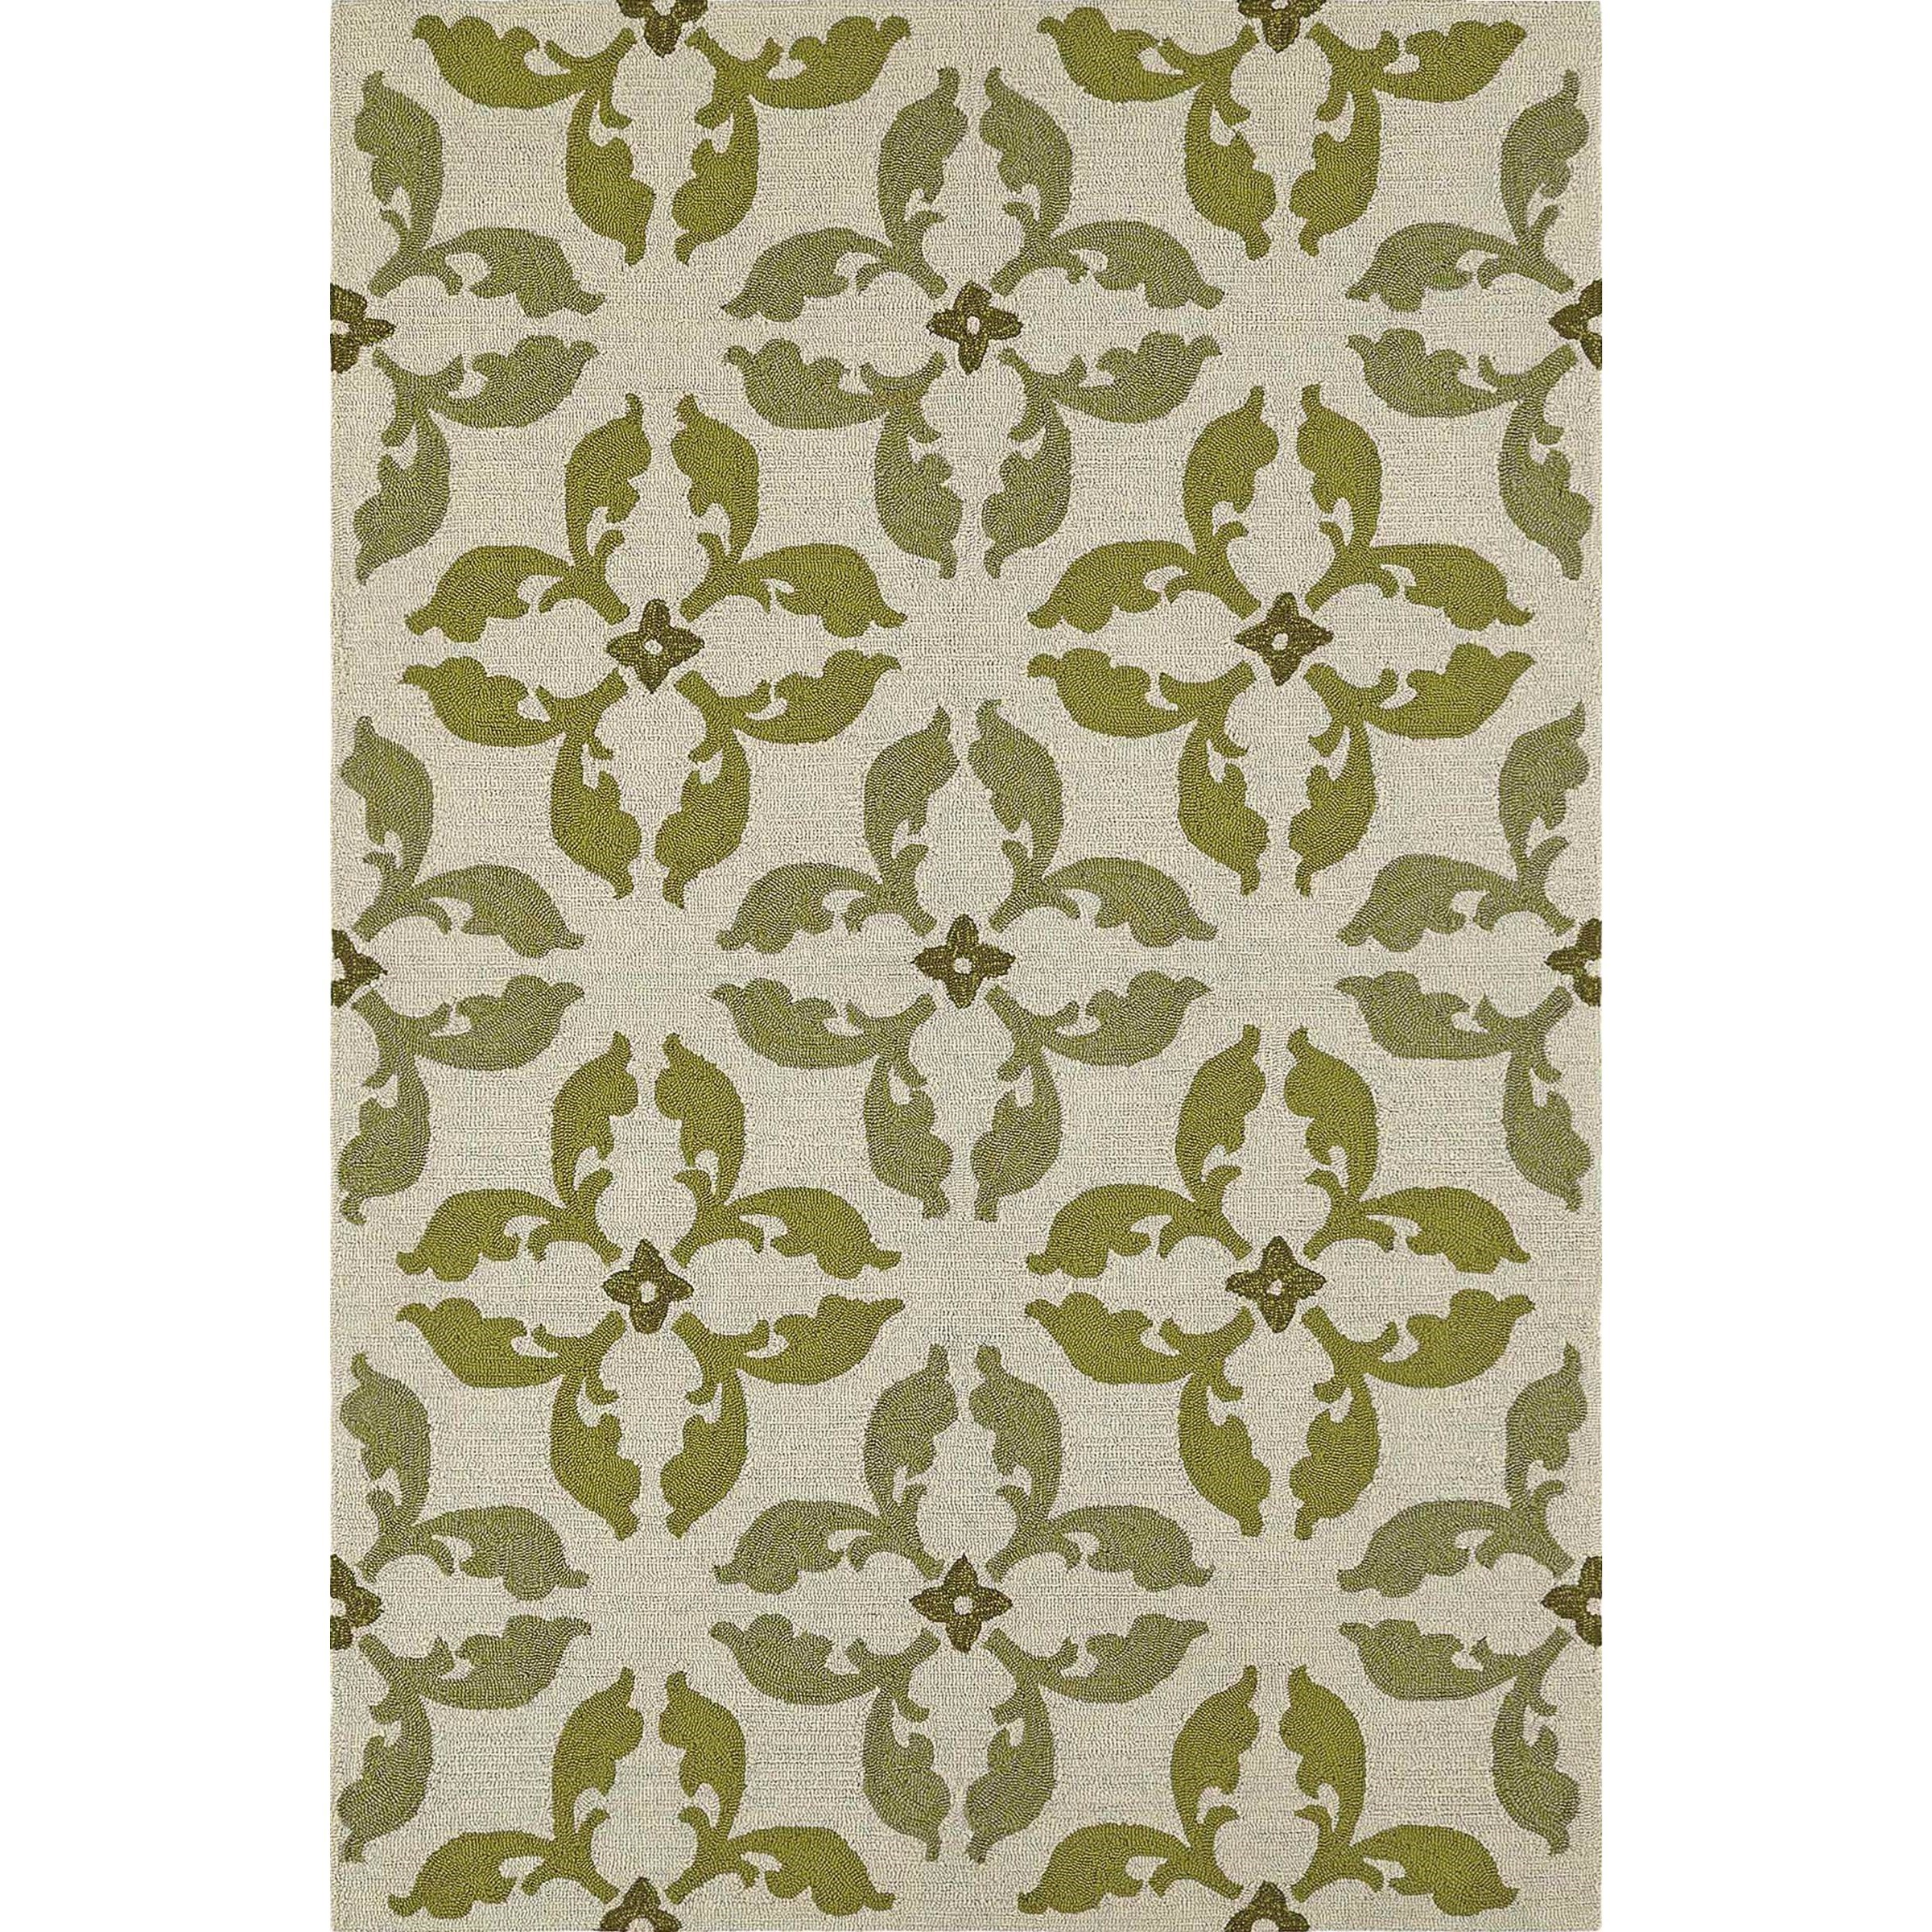 Dalyn Cabana Lime 9'X13' Rug - Item Number: CN17LM9X13